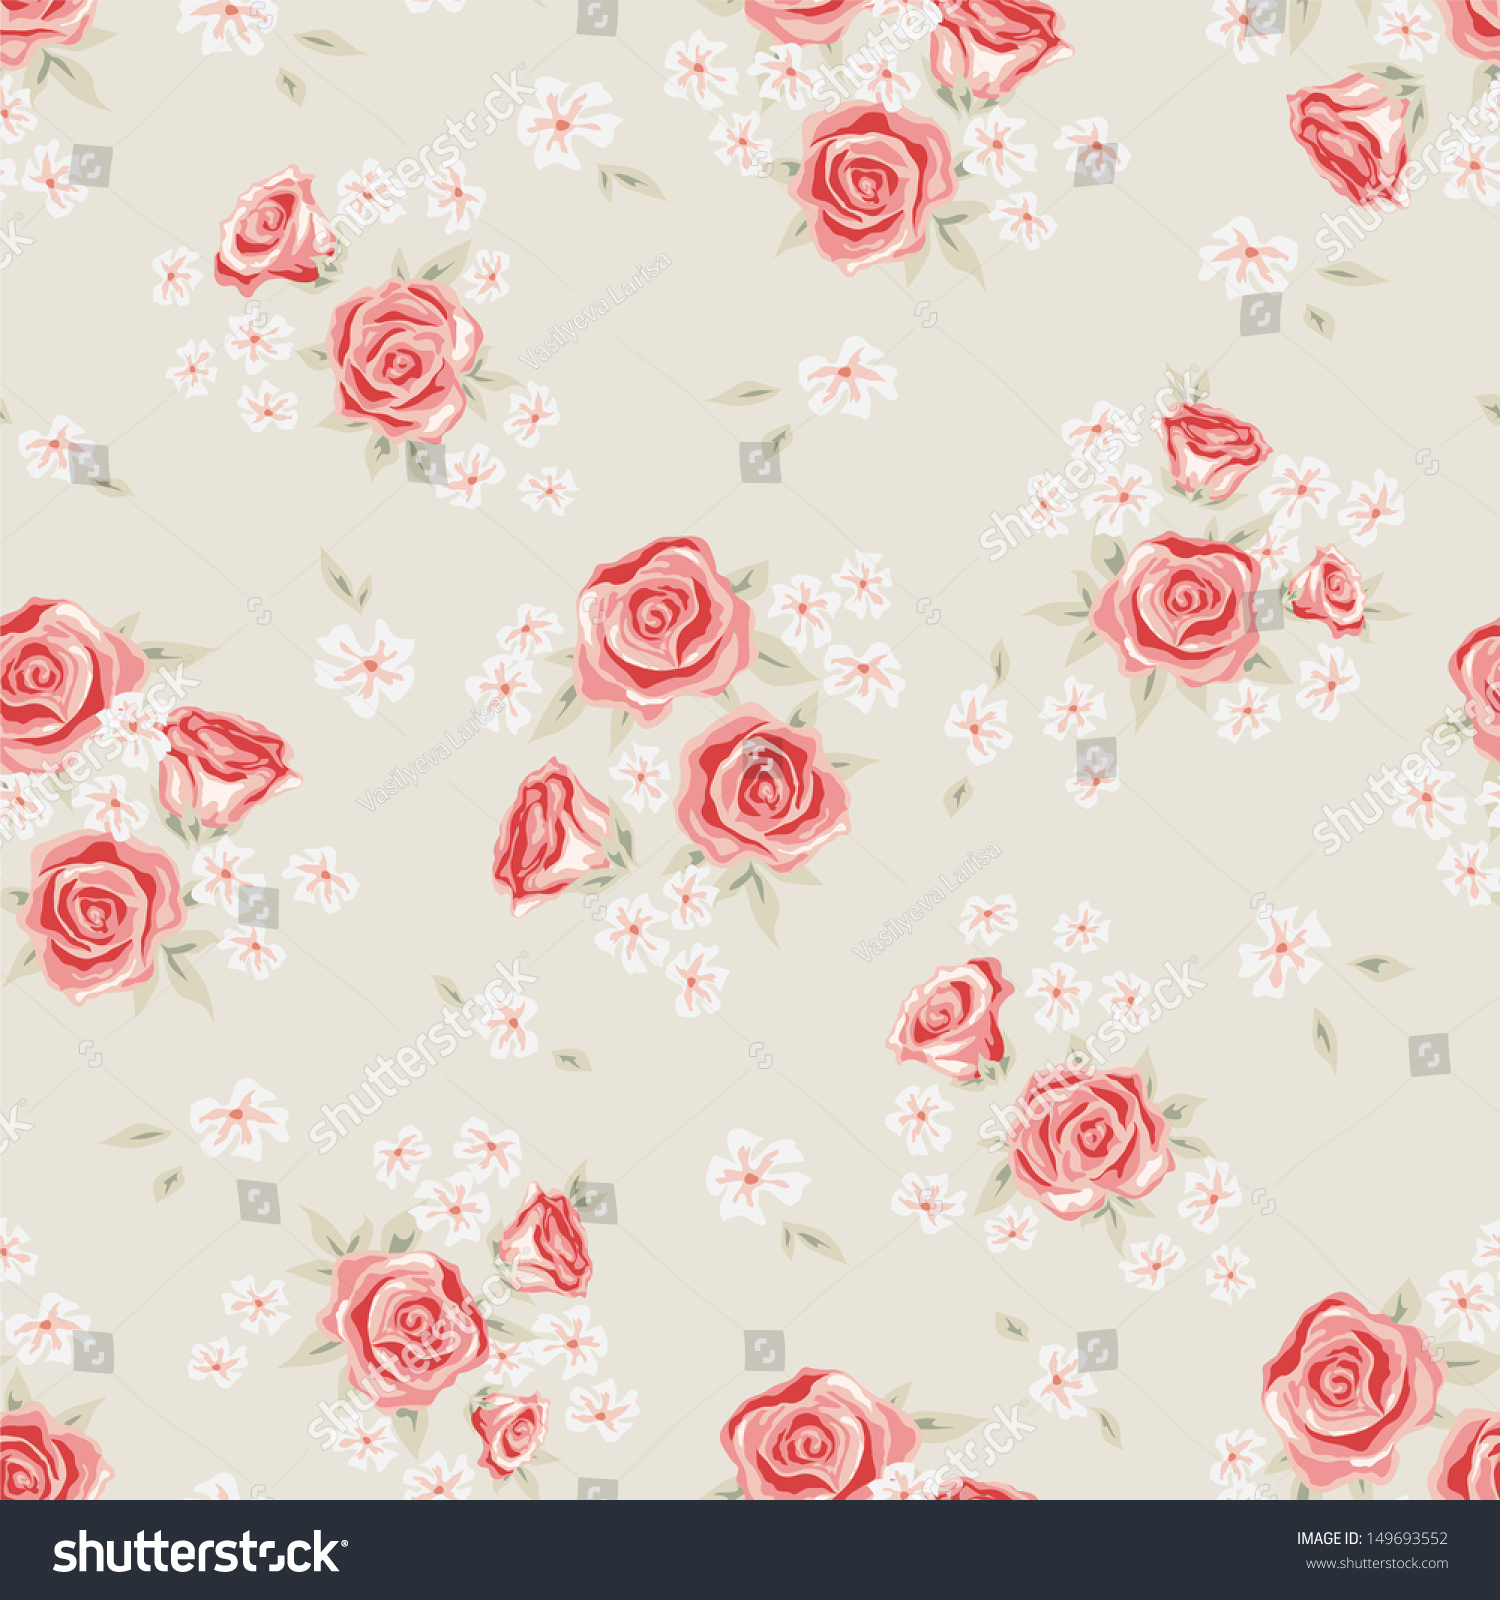 Simple flower pattern background - photo#16